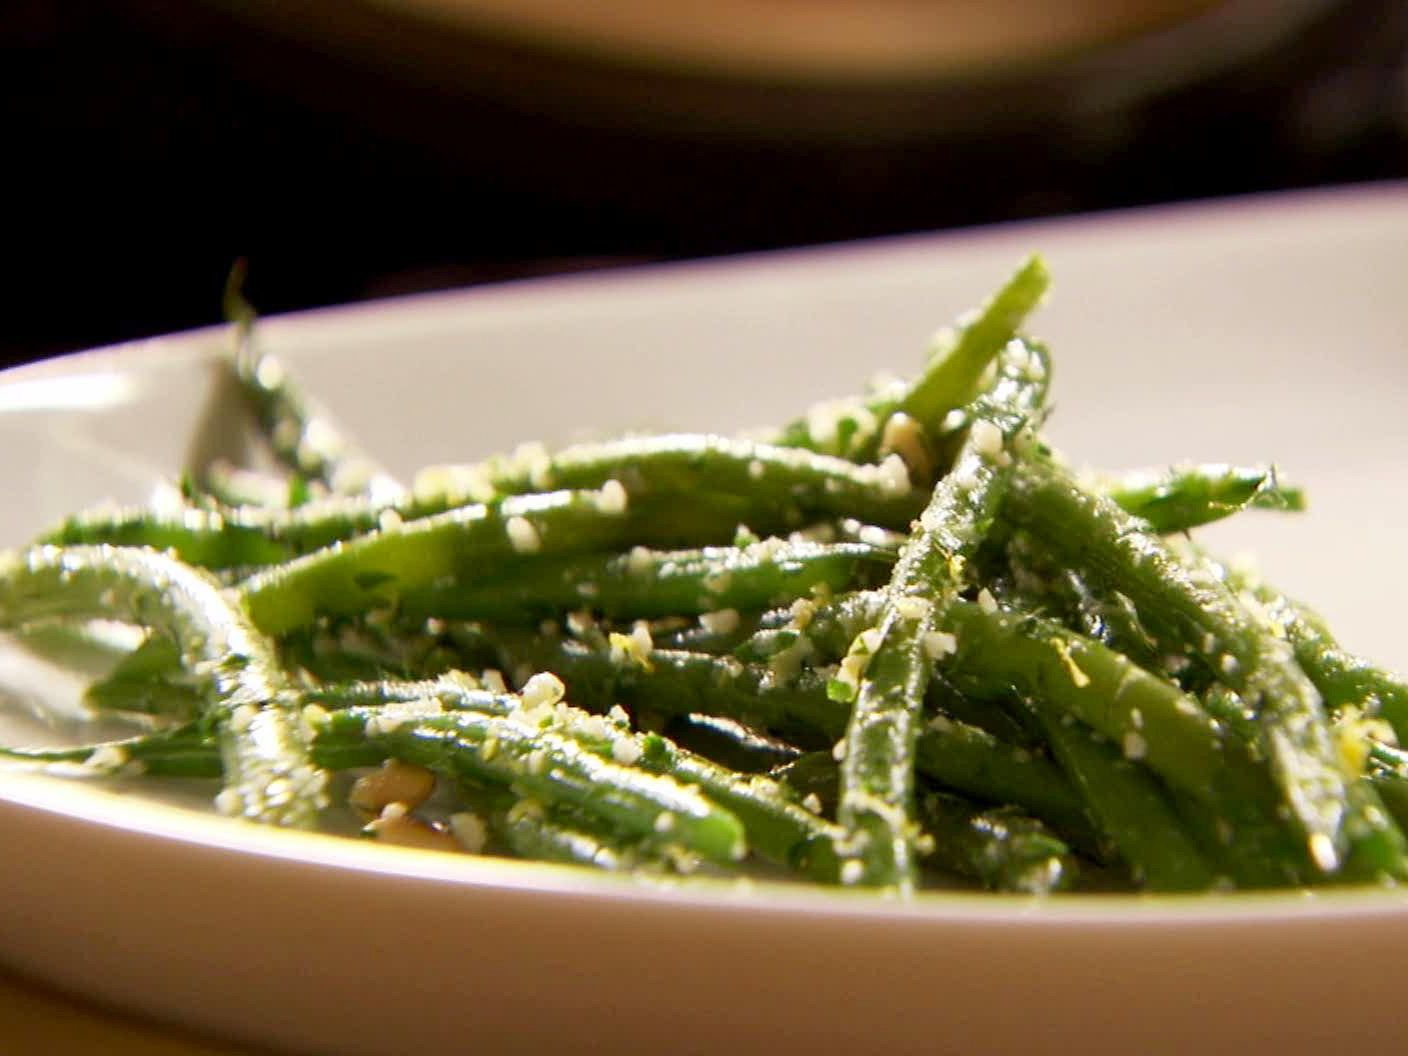 green beans gremolataina garten httpwwwfoodnetworkcom - Food Network Com Barefoot Contessa Recipes